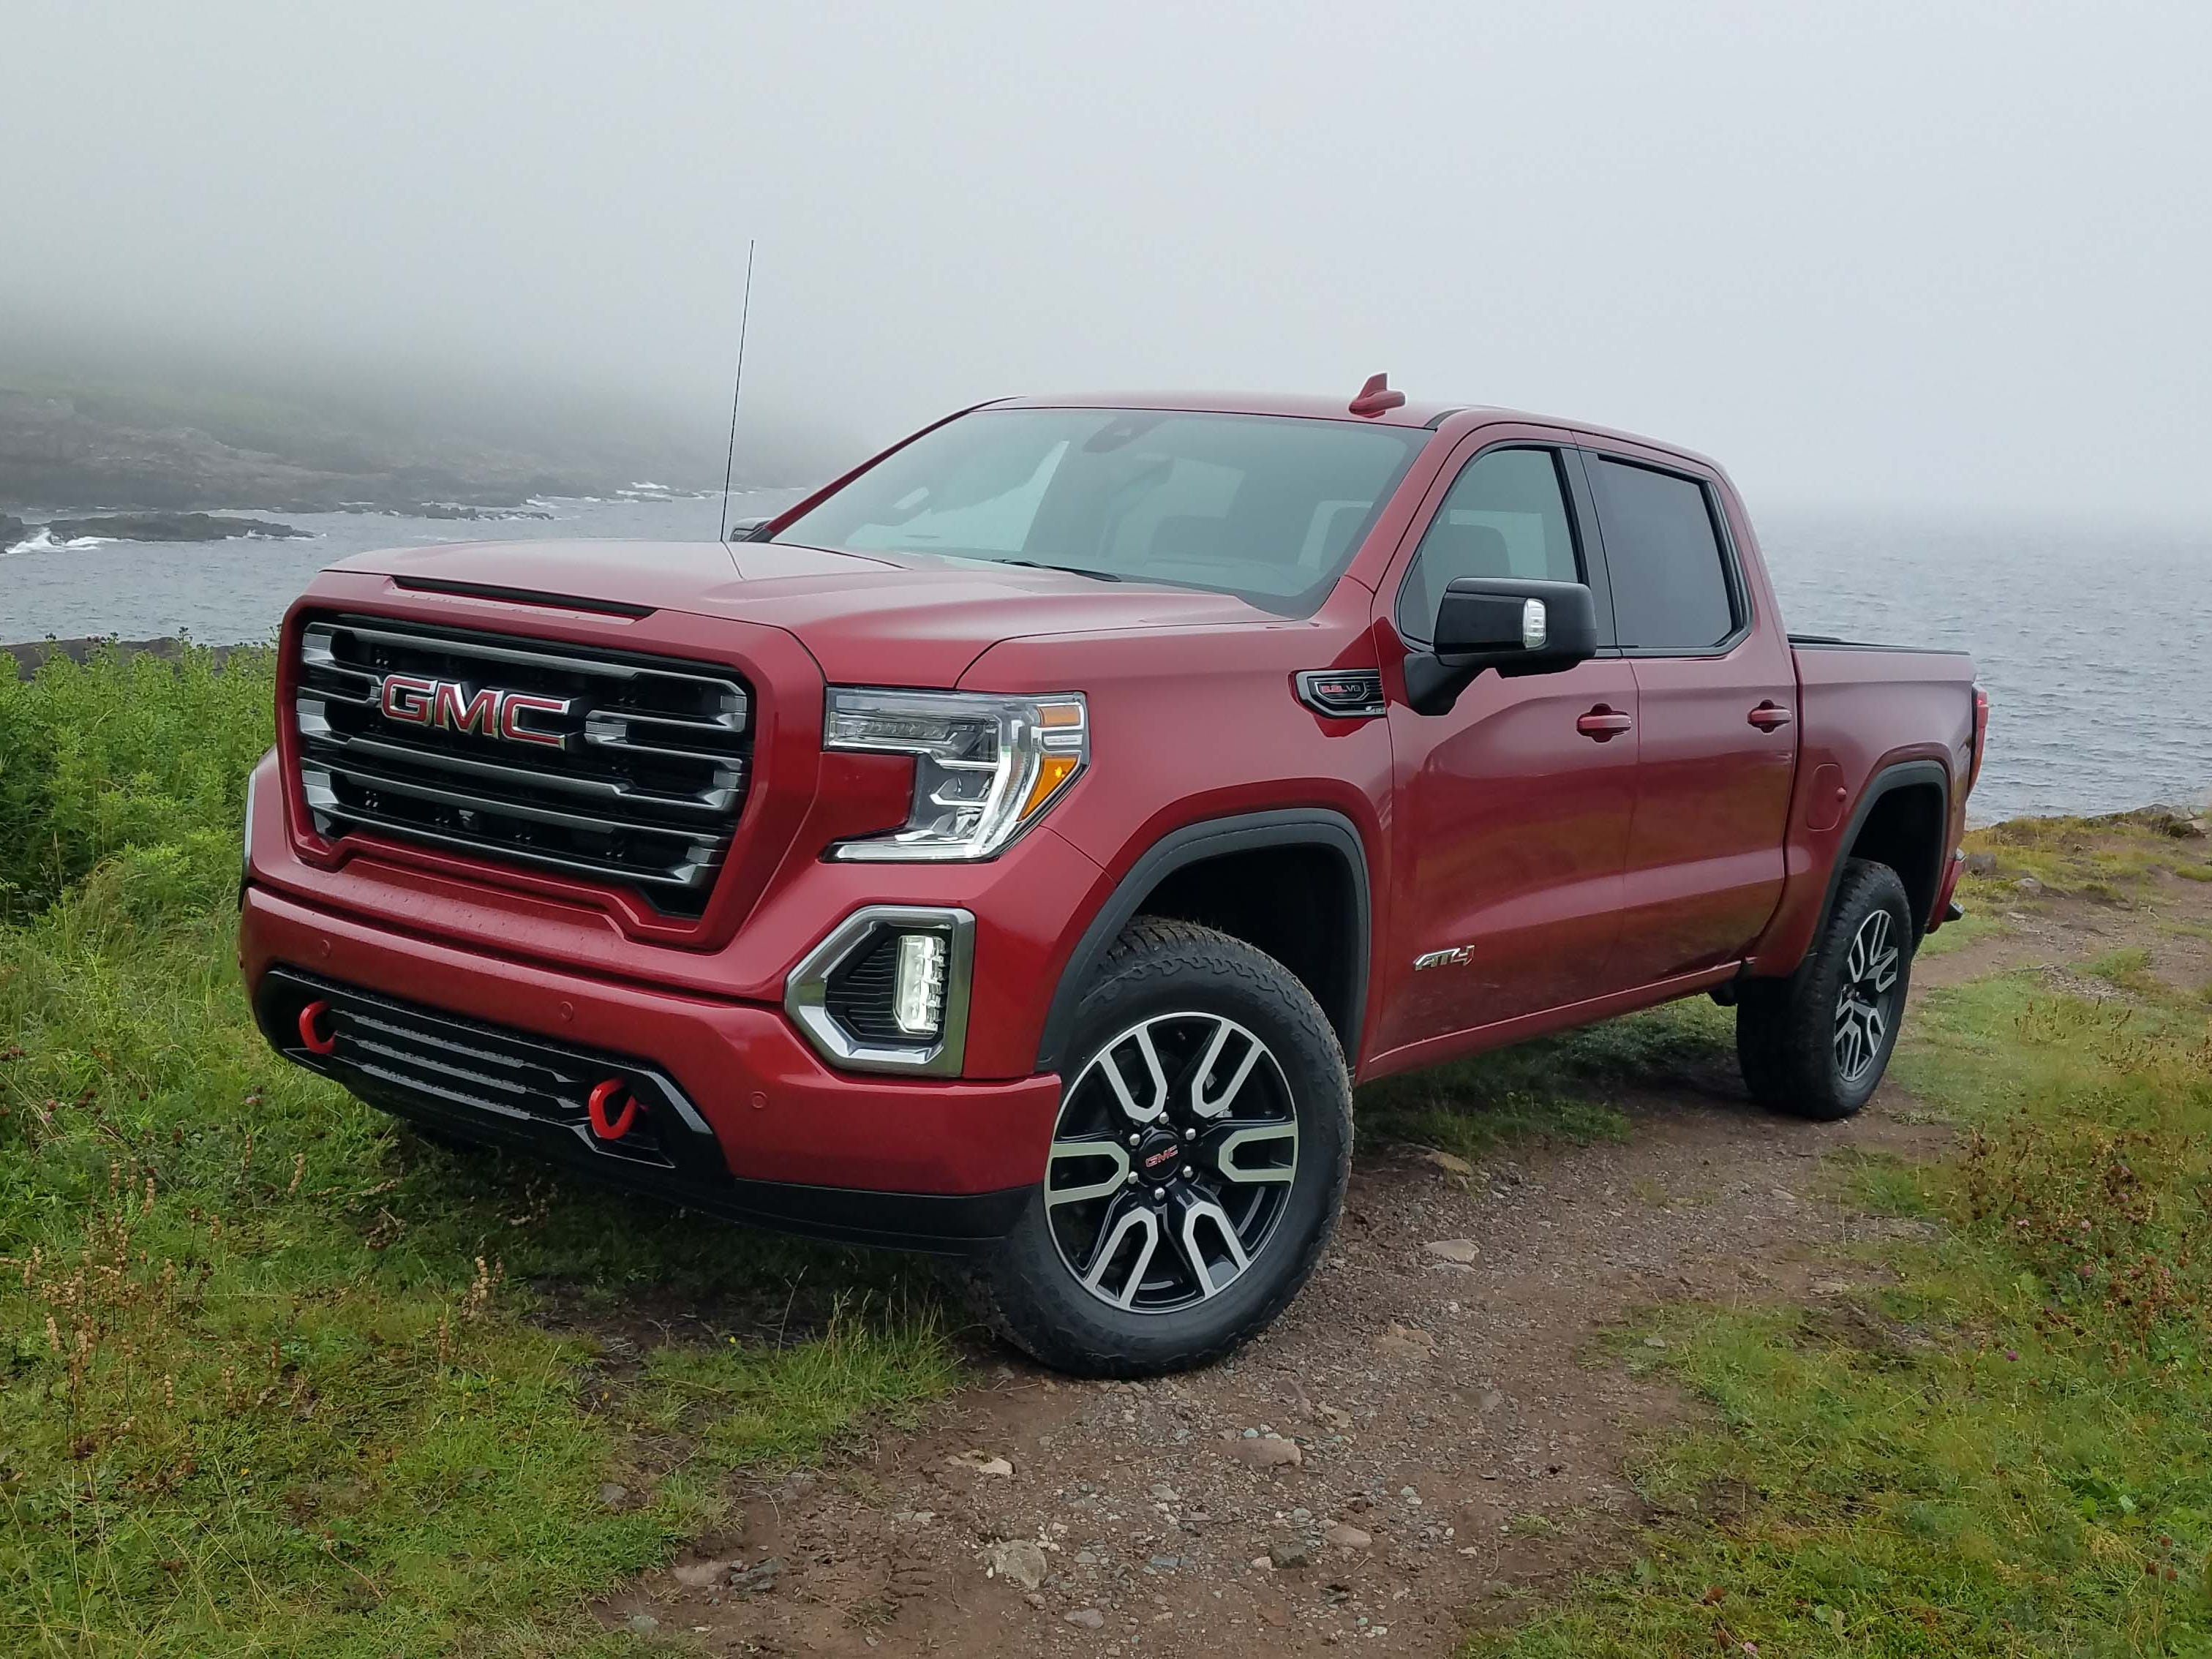 Truck of the Year nominee: The GMC Sierra, seen here in its new top-trim badge - the AT4. The off-road trim gives the Denali luxury but with a rugged edge for outdoorsy buyers.